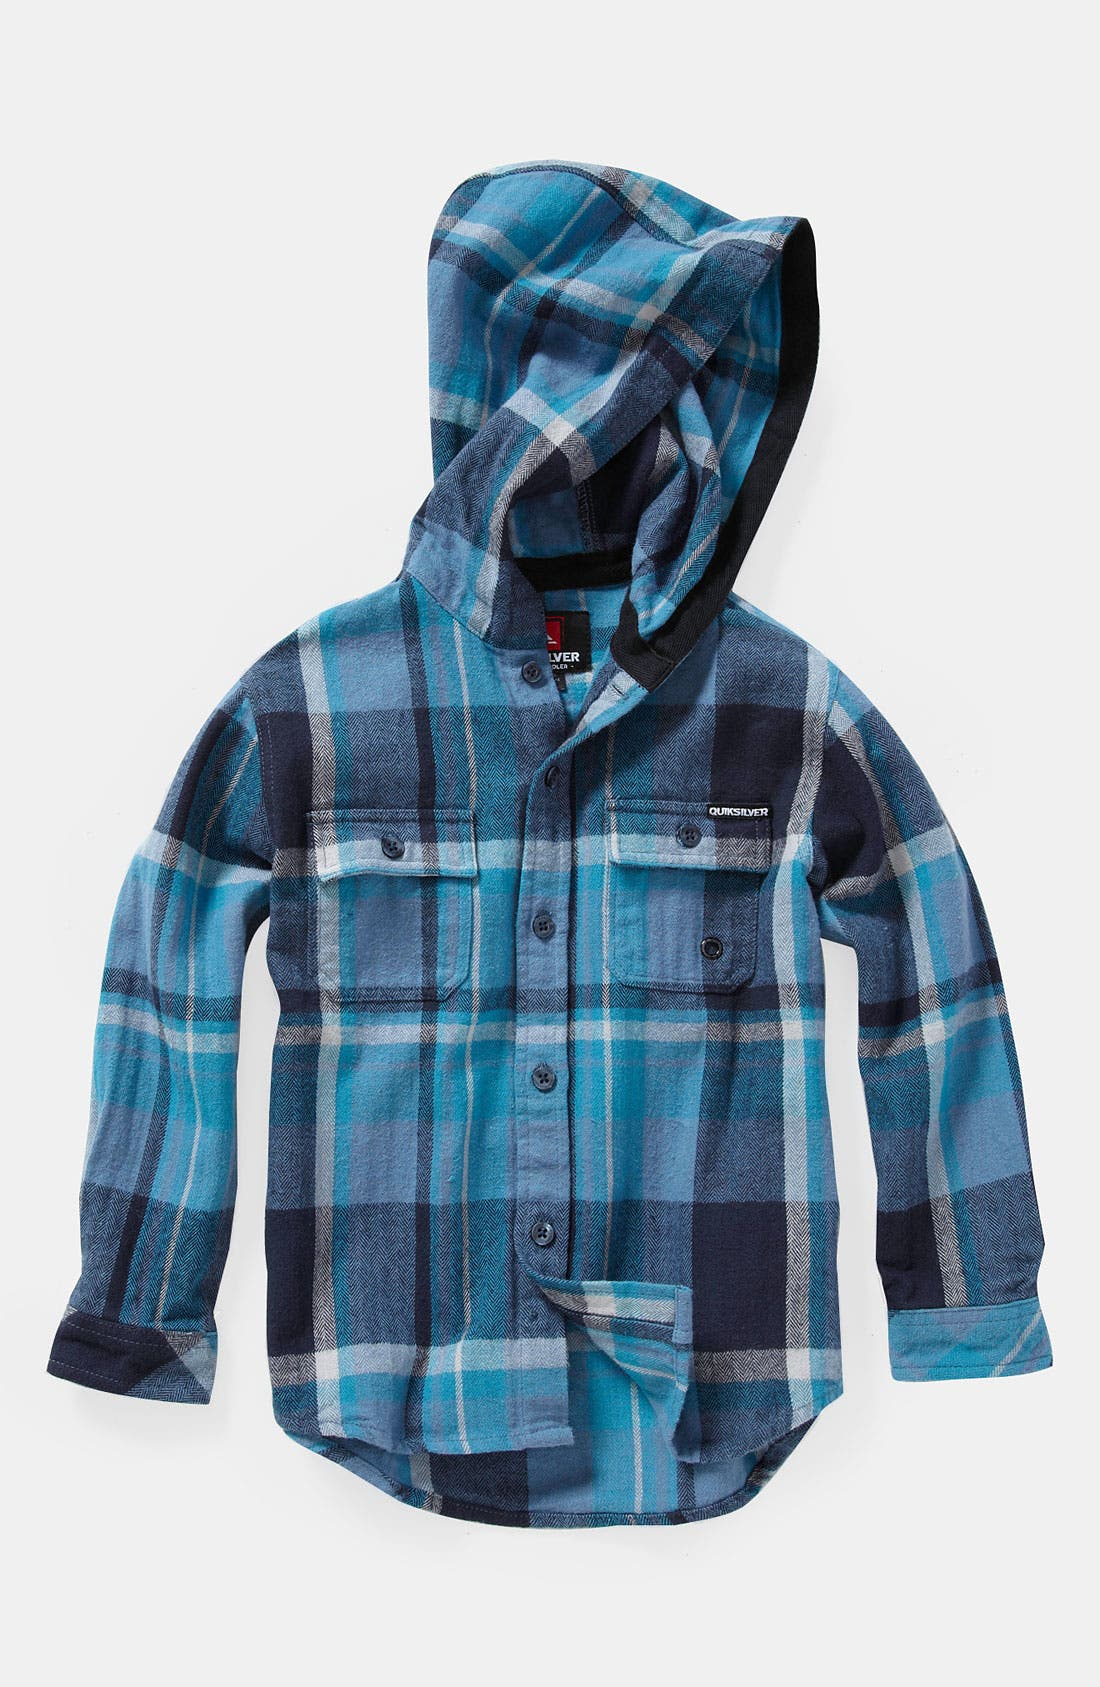 Alternate Image 1 Selected - Quiksilver 'Four Short' Hooded Flannel Shirt (Toddler)